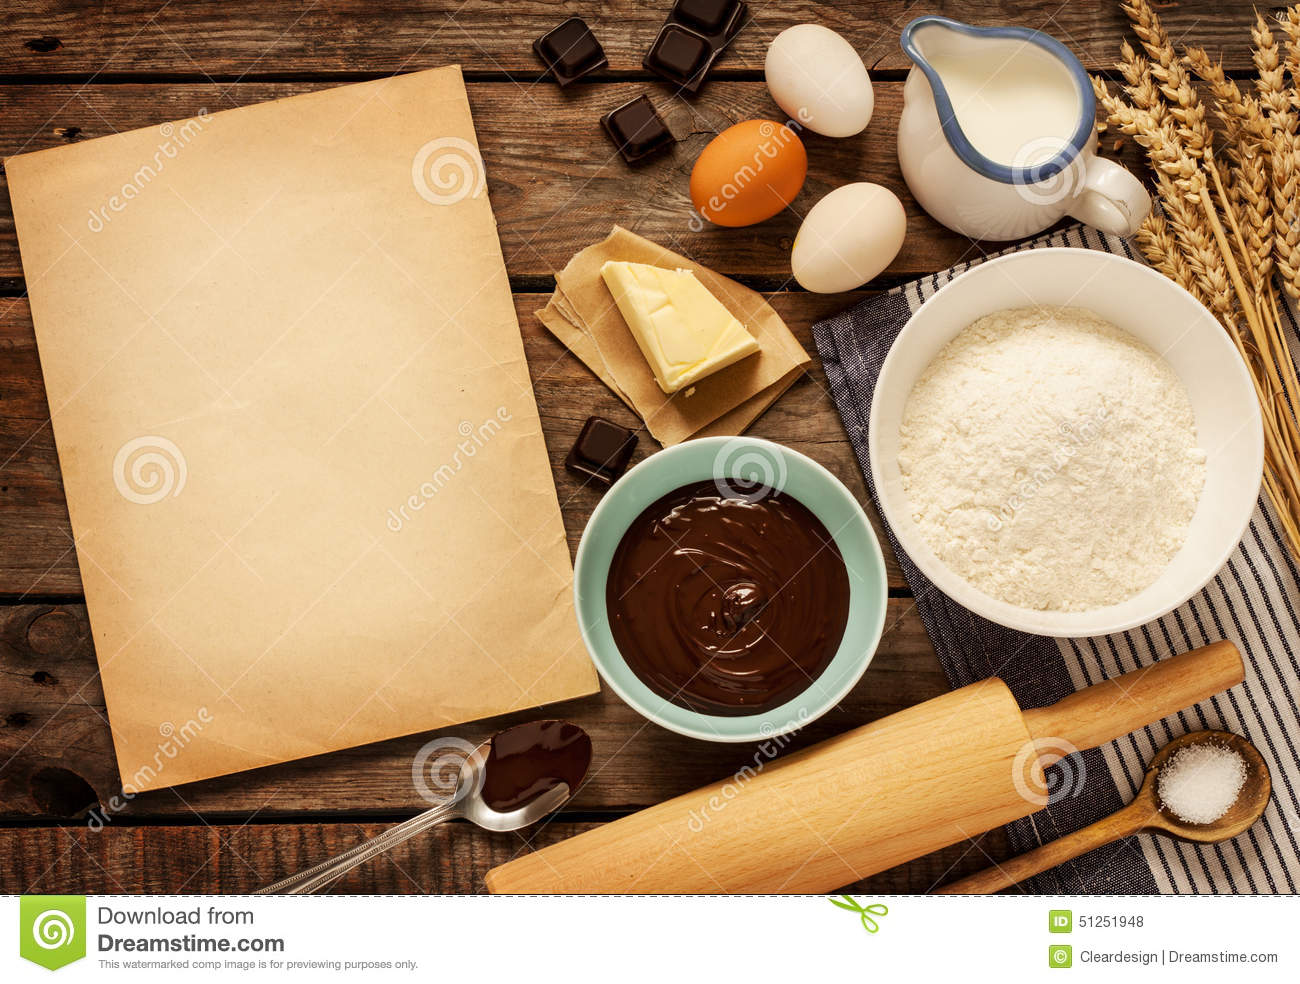 Cake Recipes With Pictures And Ingredients : Baking Chocolate Cake - Ingredients And Blank Paper ...